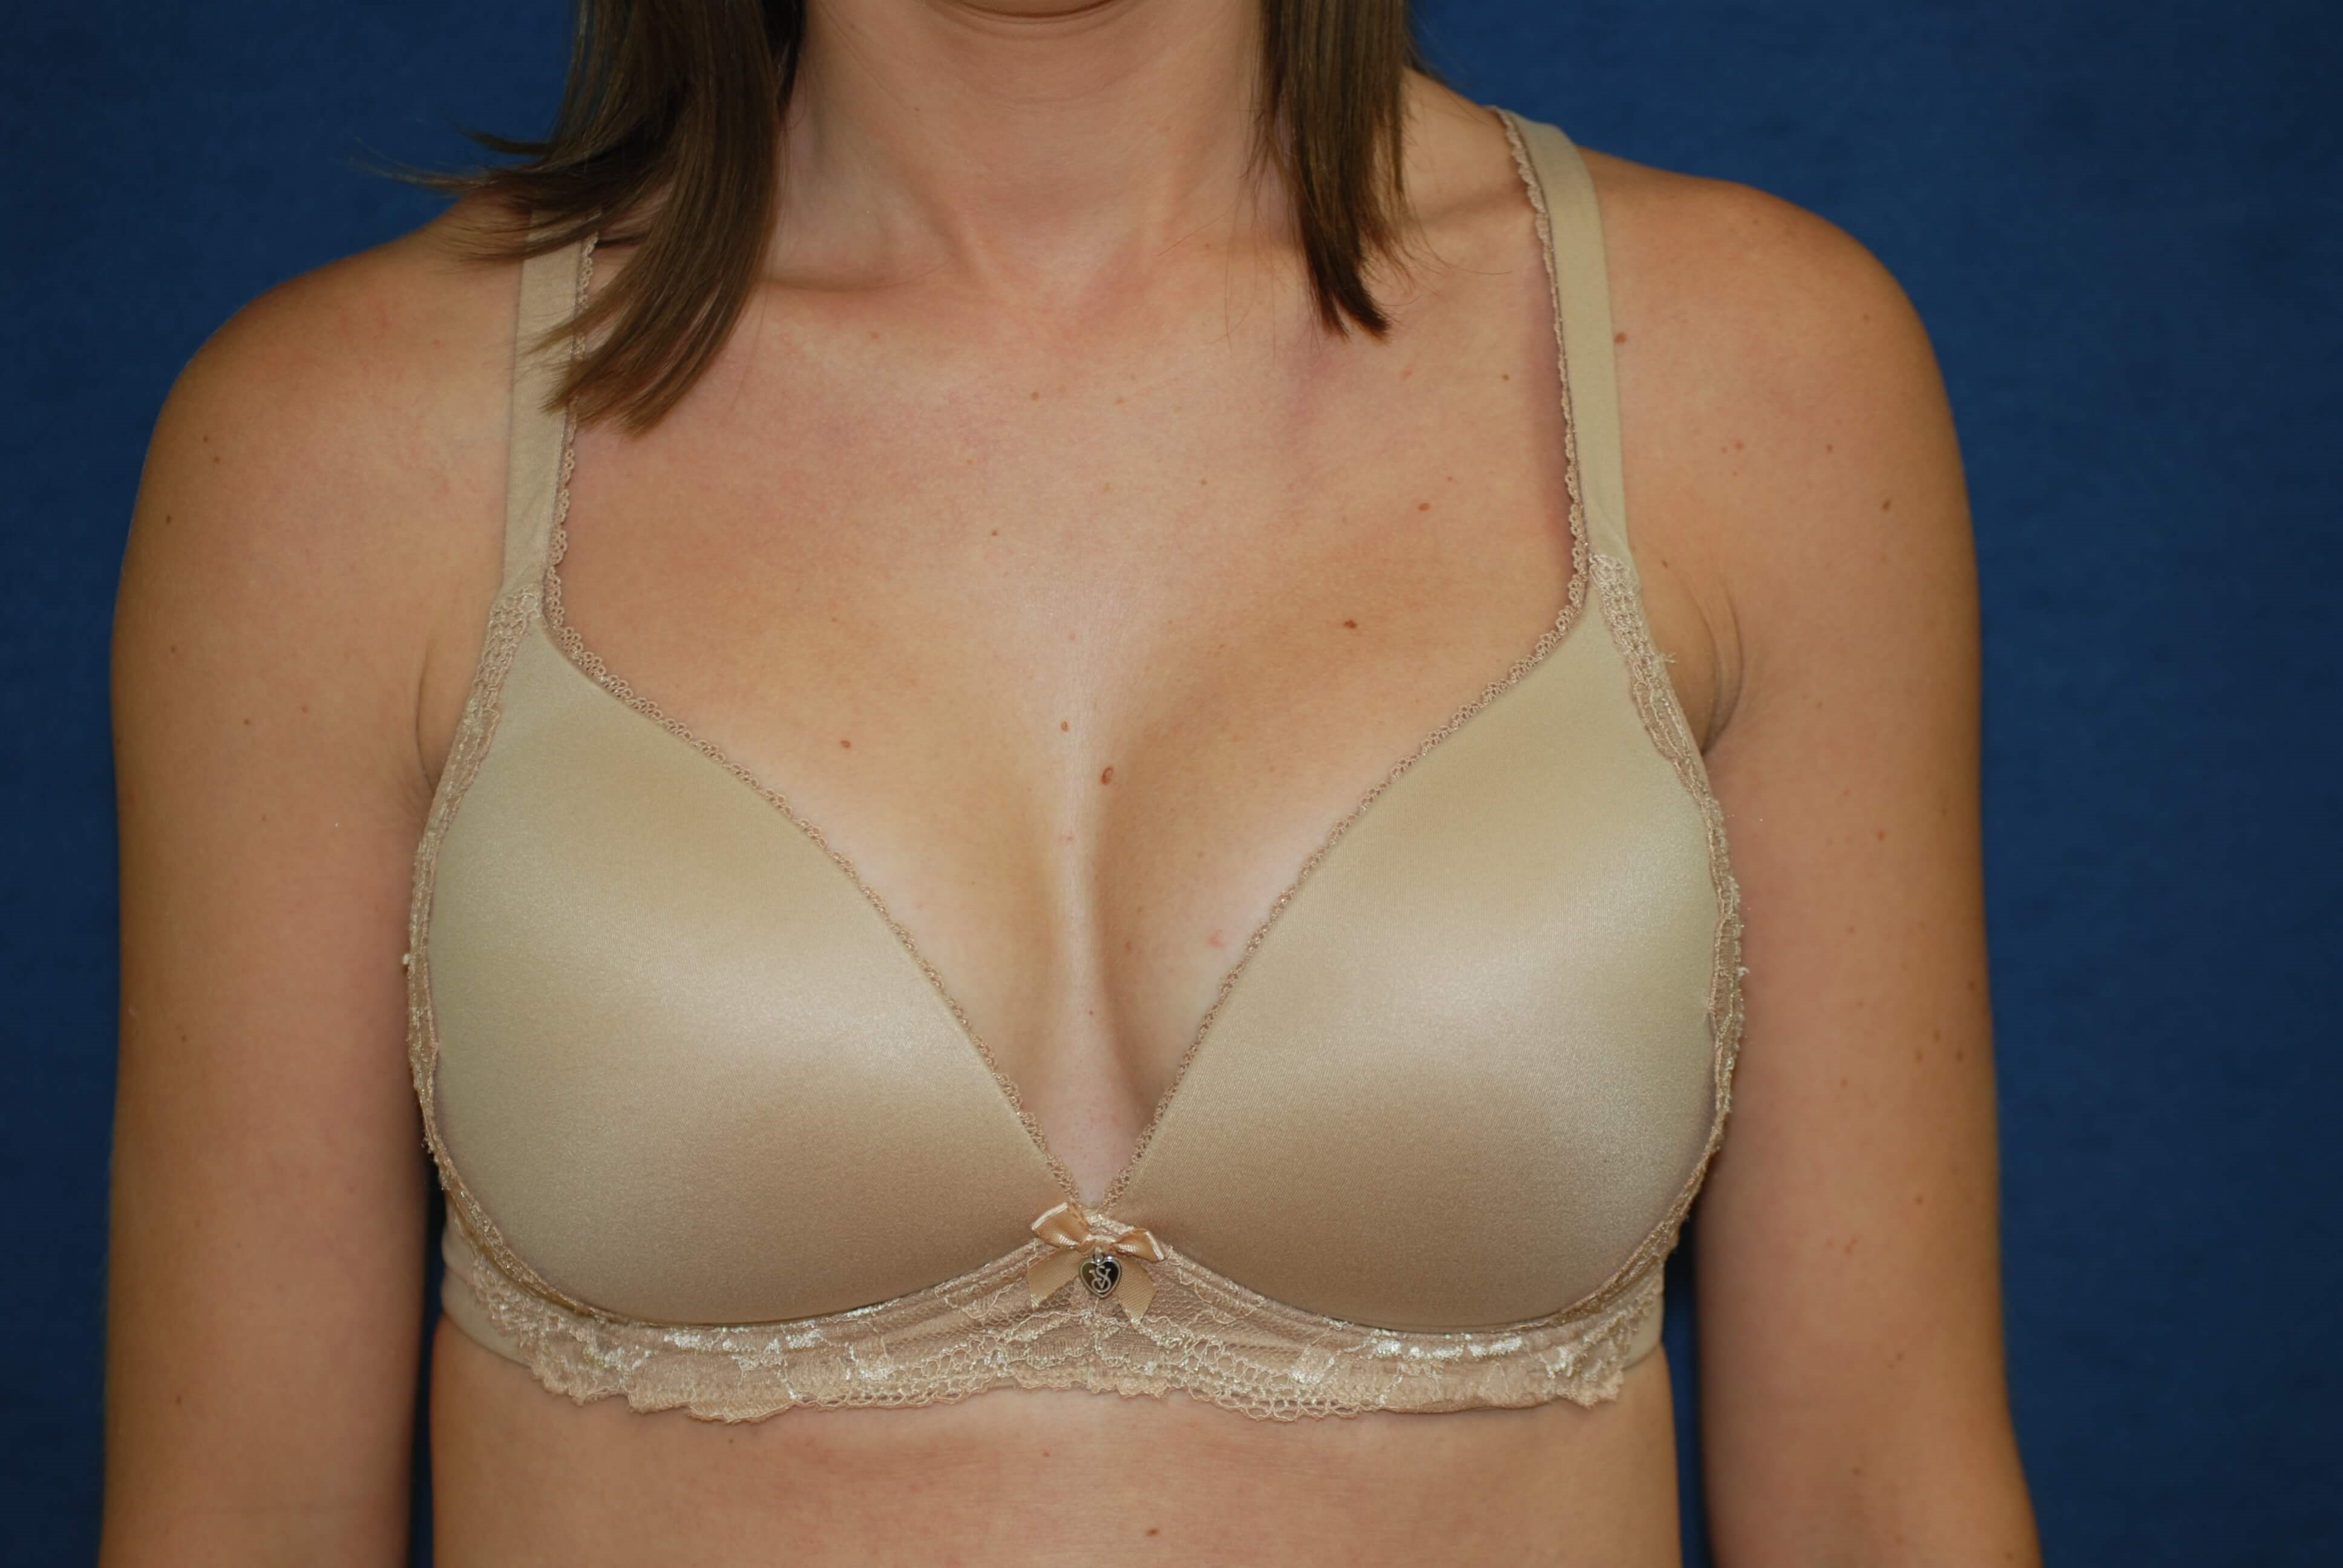 With Bra After- front view in bra